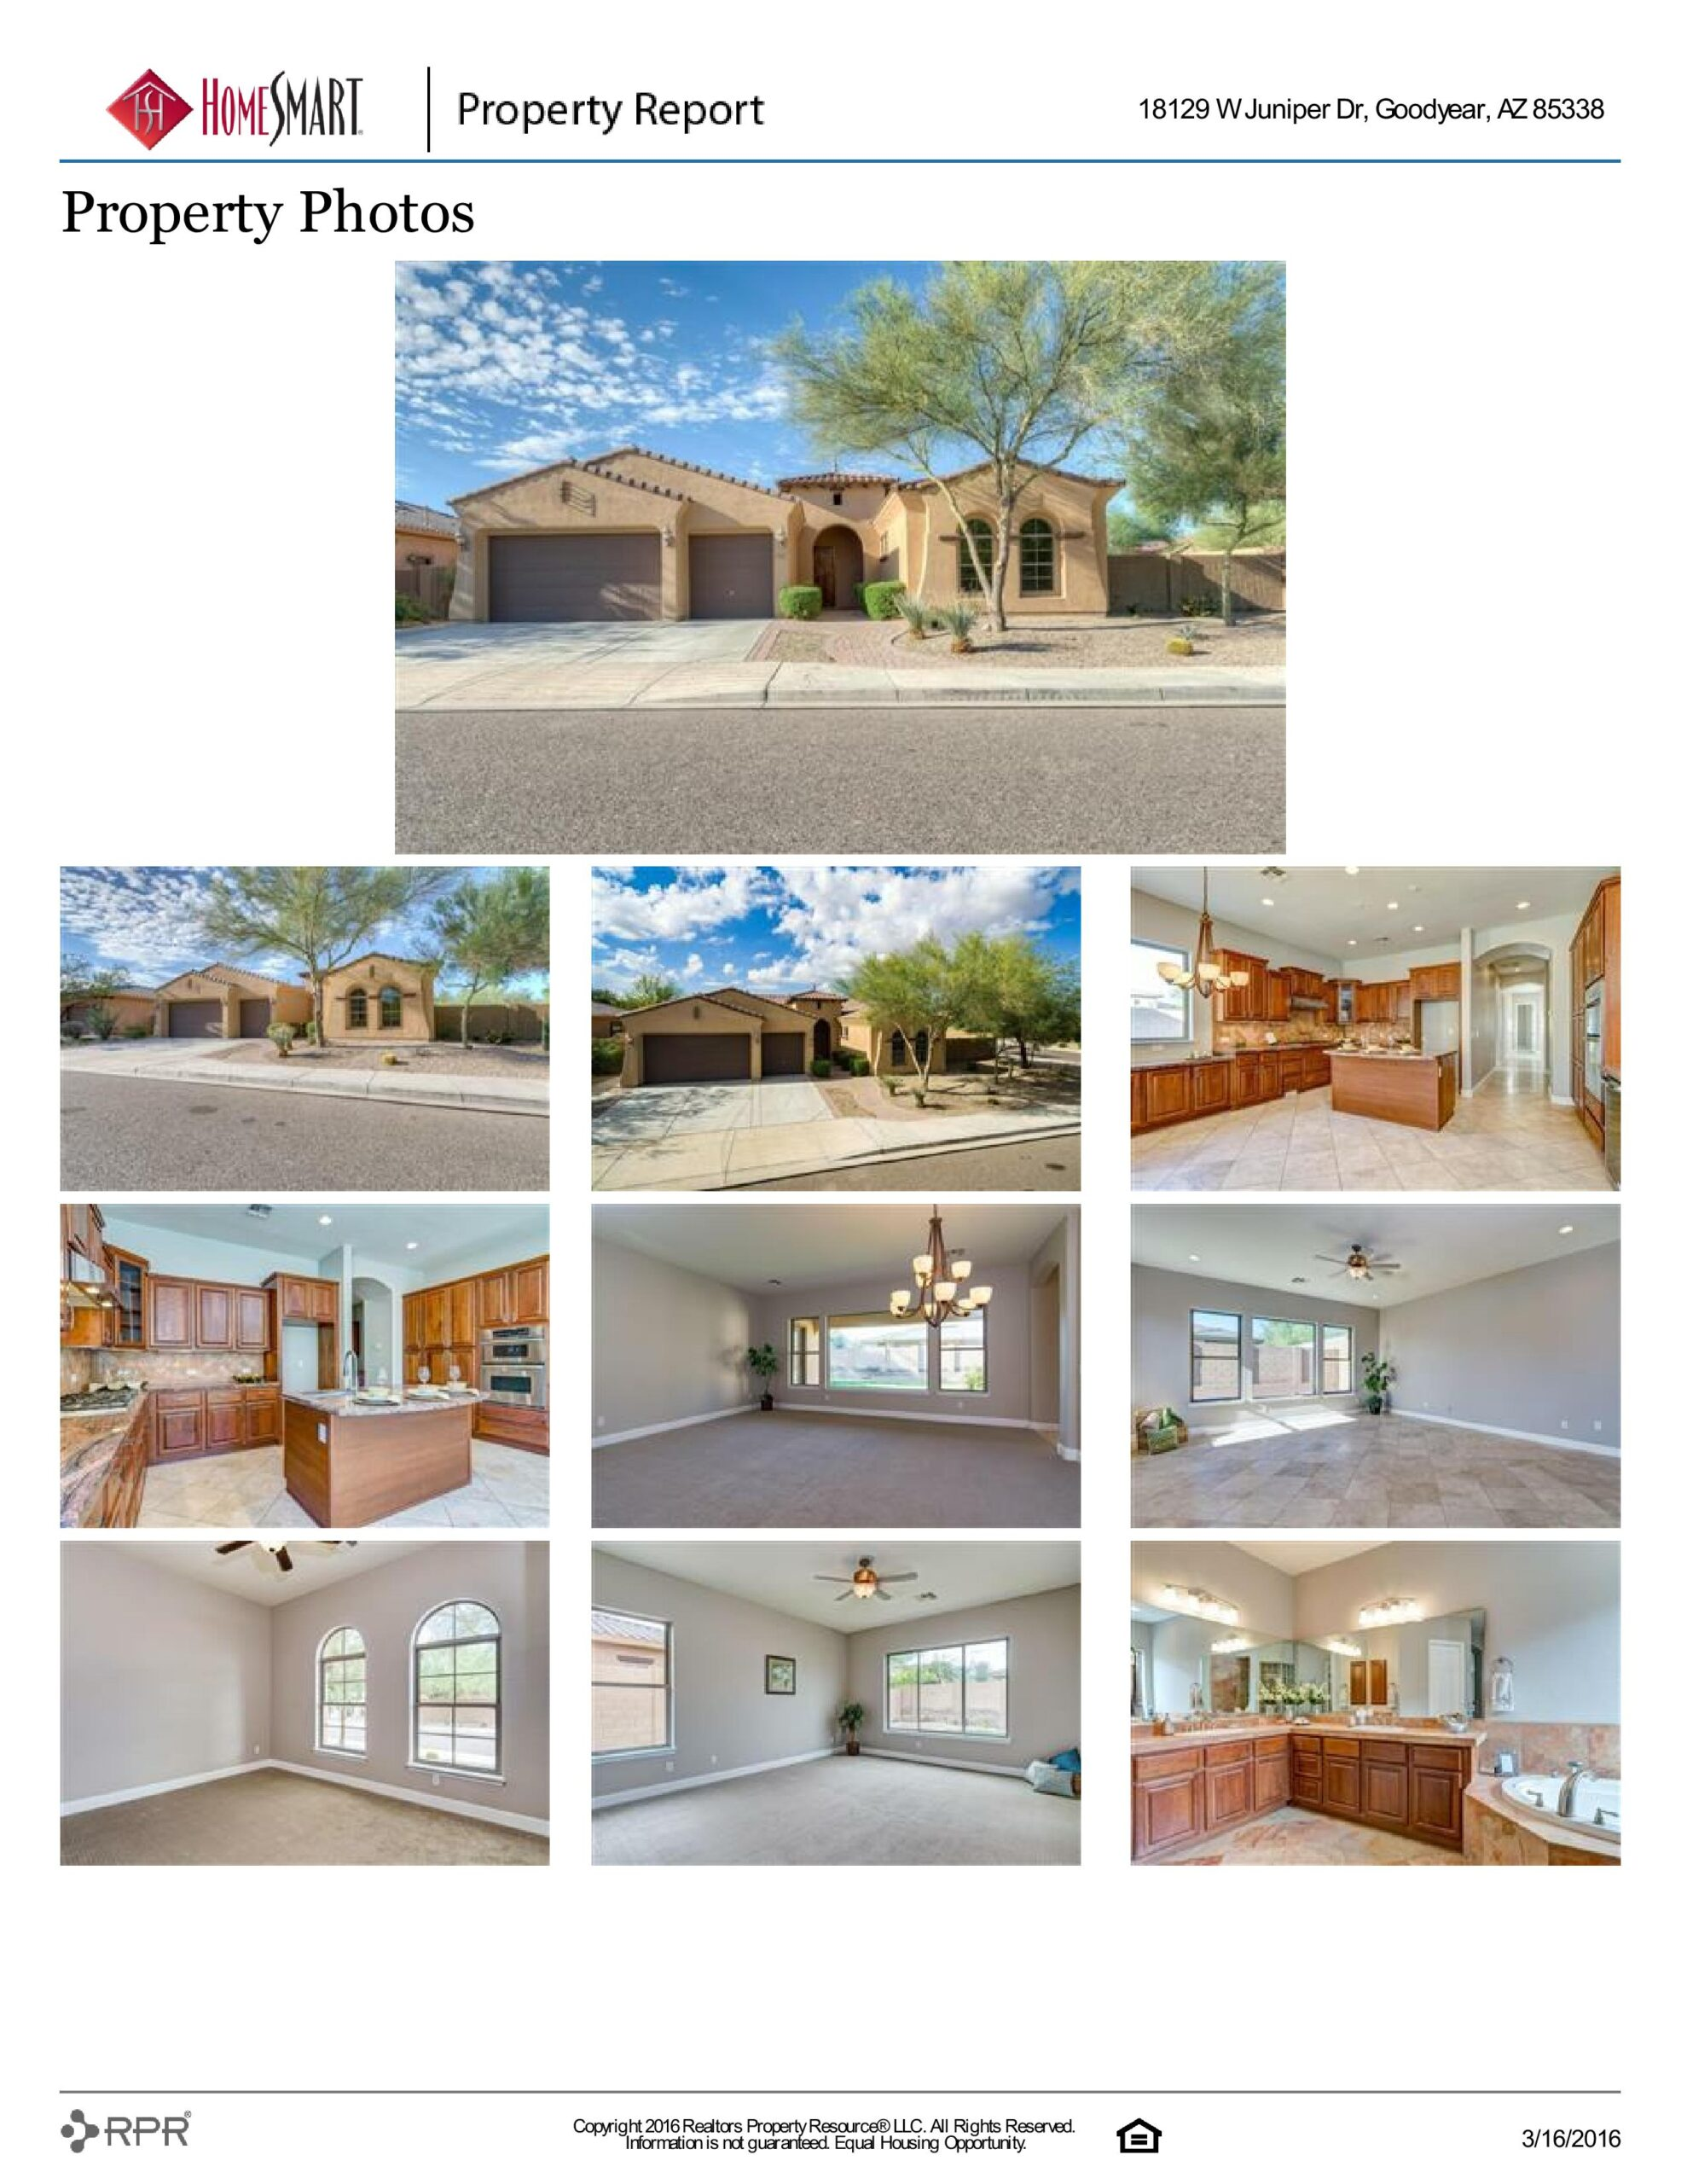 18129 W JUNIPER DR PROPERTY REPORT-page-006